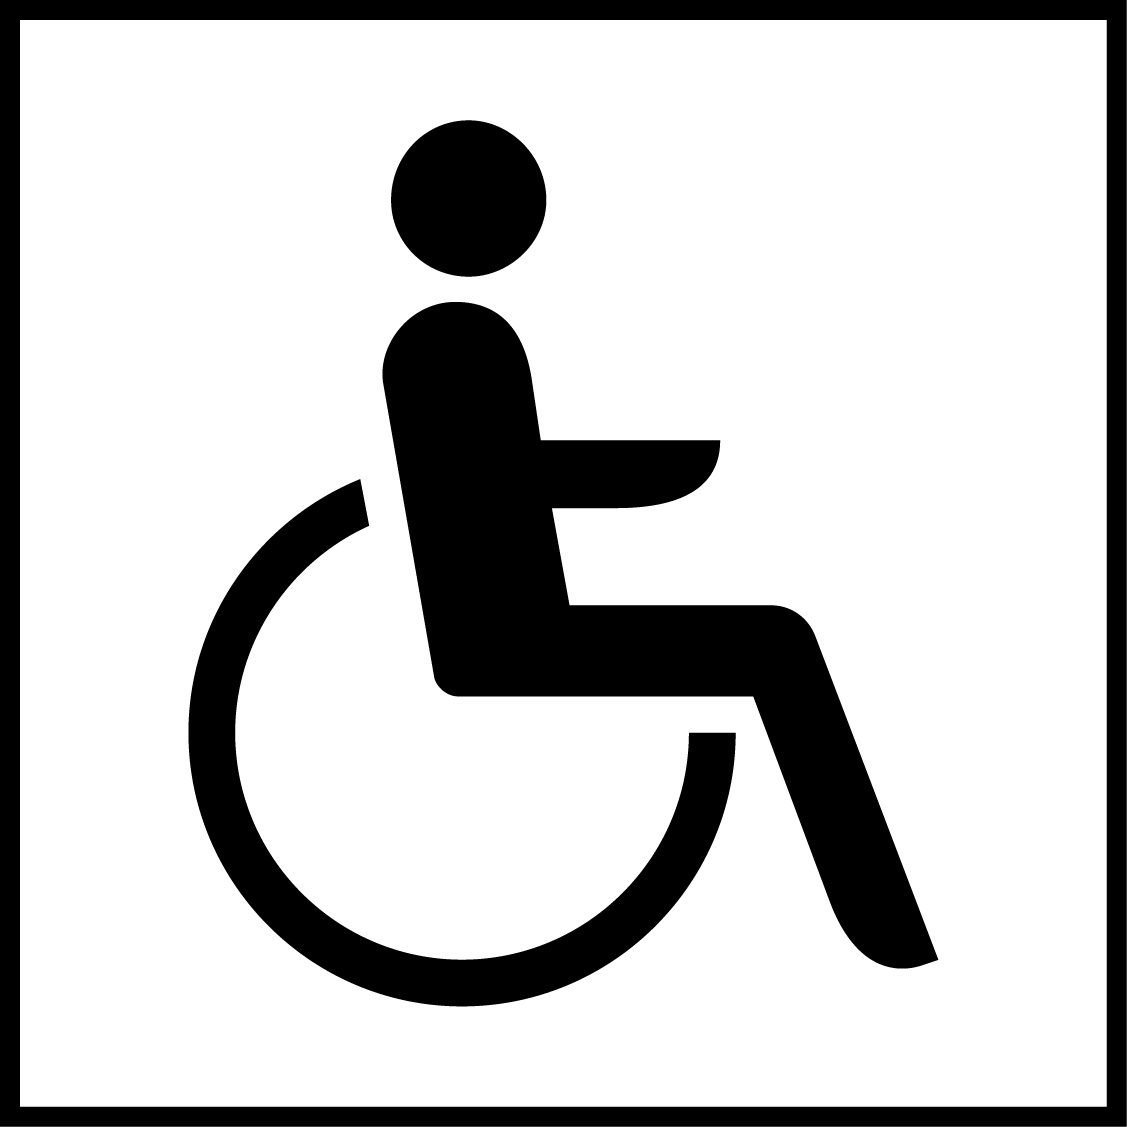 Lift and toilette for disabled people